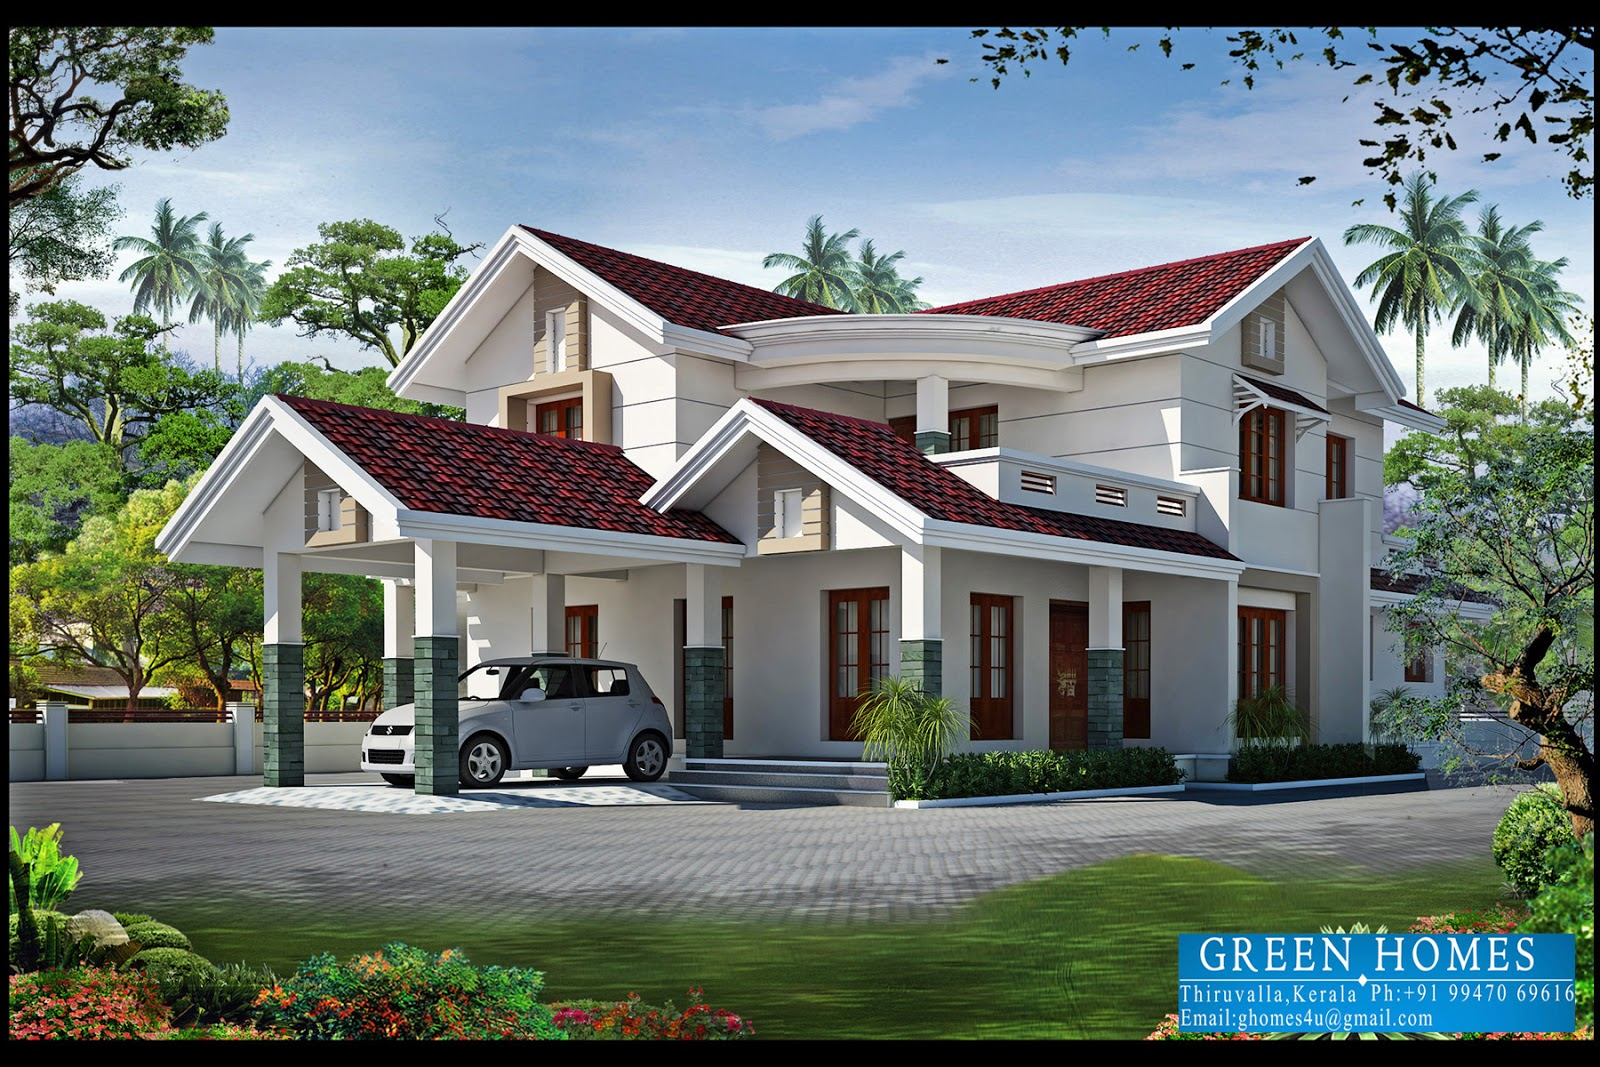 Green homes 4bhk kerala home design 2550 for Kerala model house photos with details